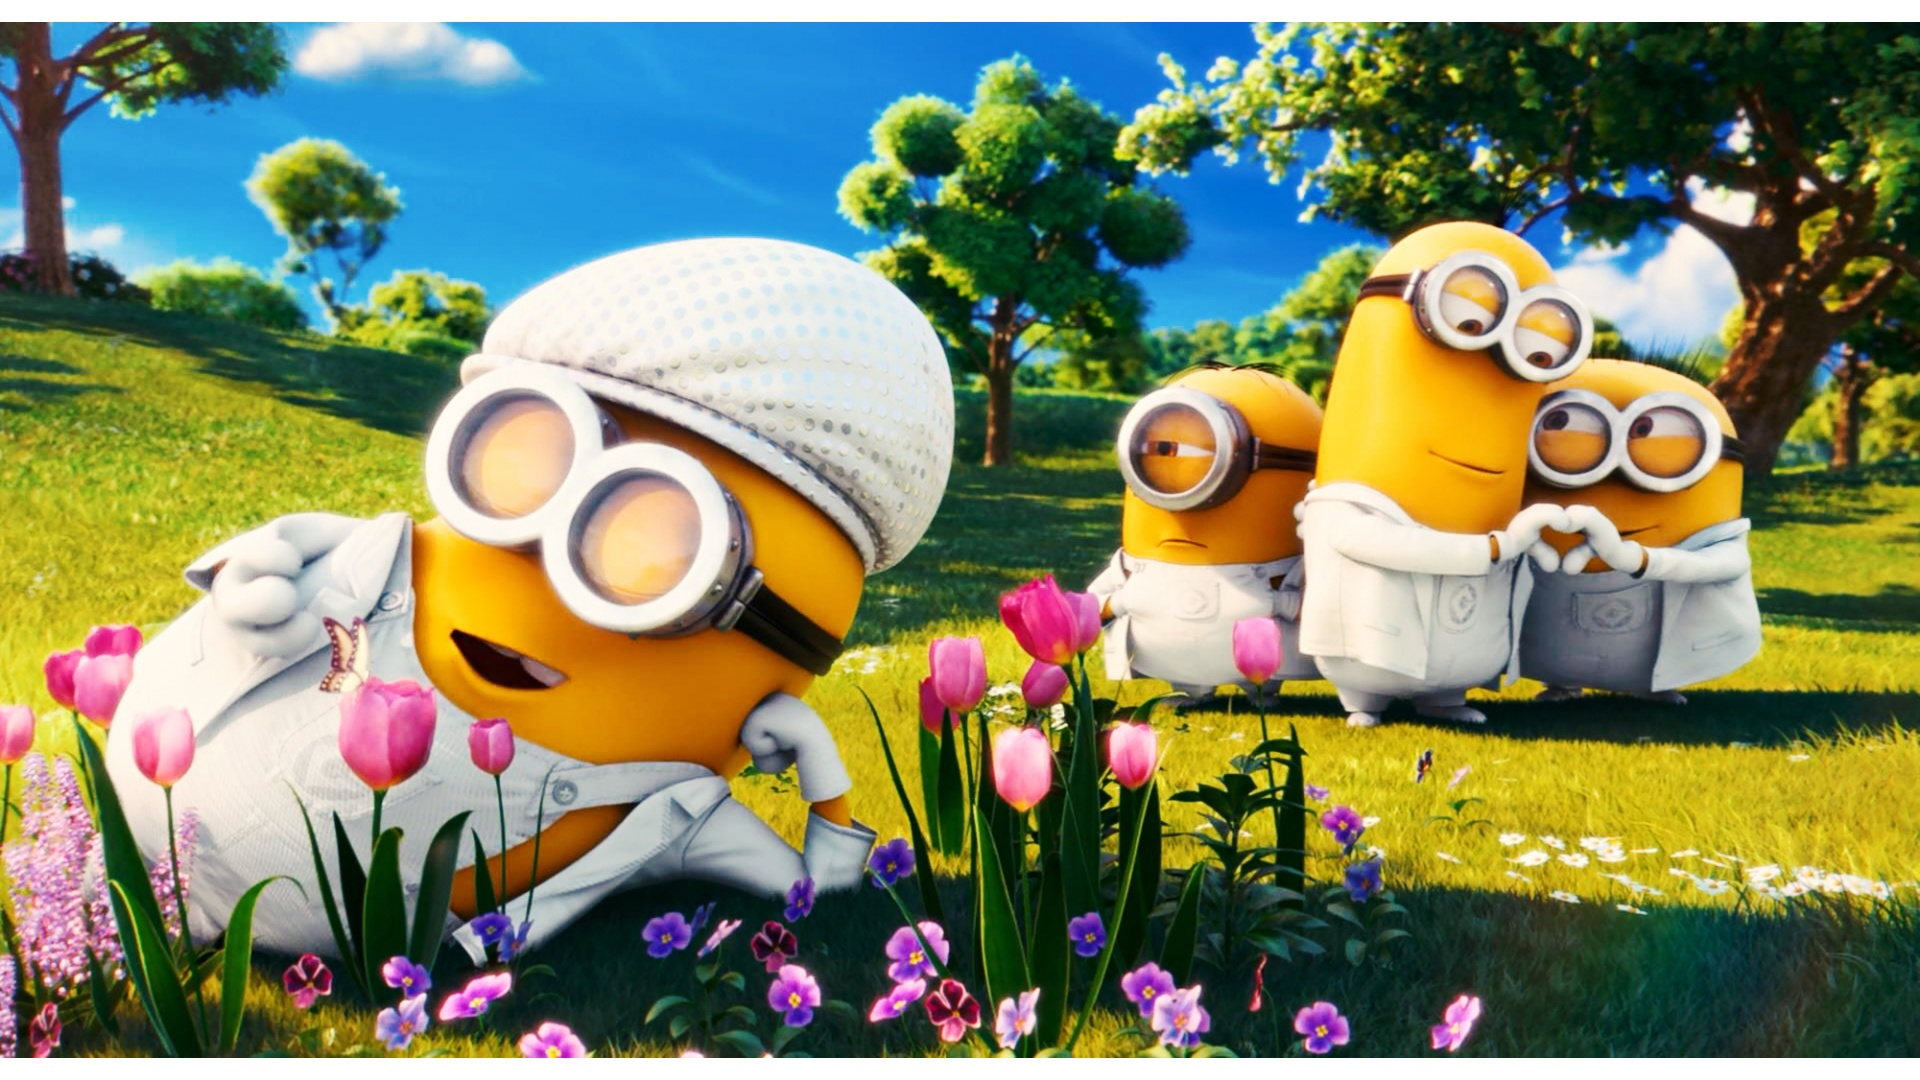 minioncornblob1 images minion looking cute!!! hd wallpaper and